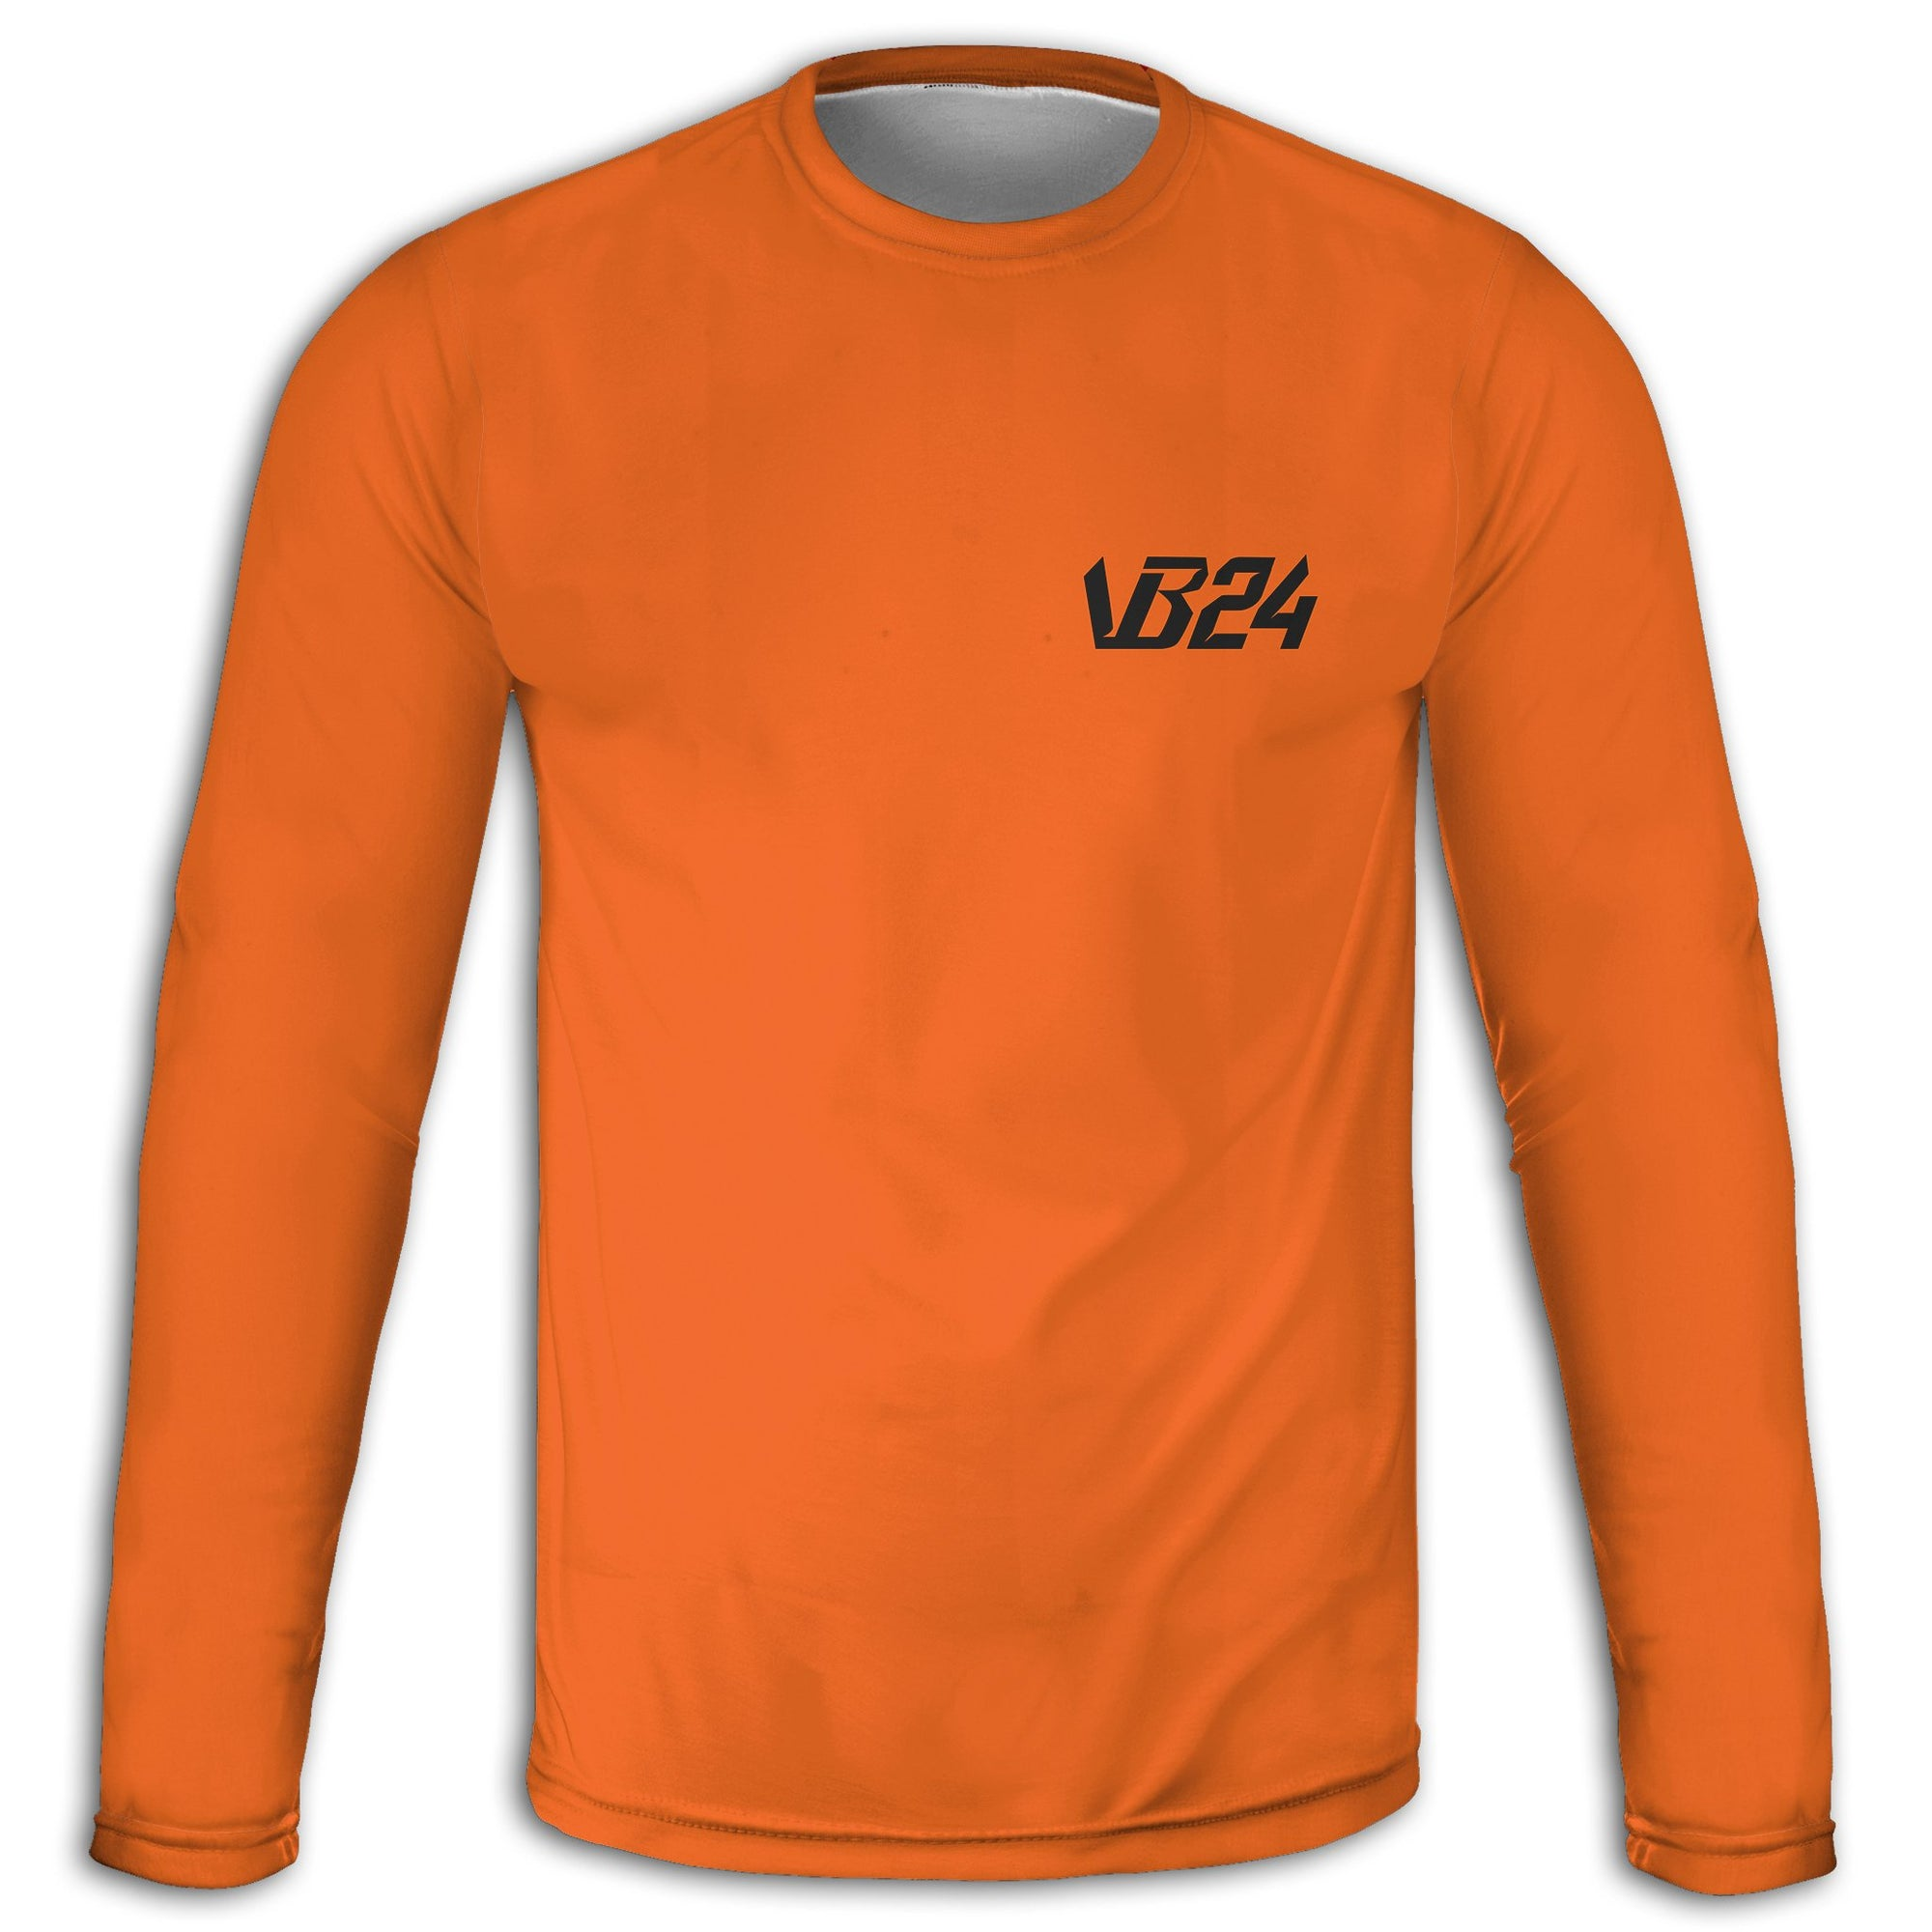 Twenty Four - Orange Long Sleeve Tee | vonbellshop.com